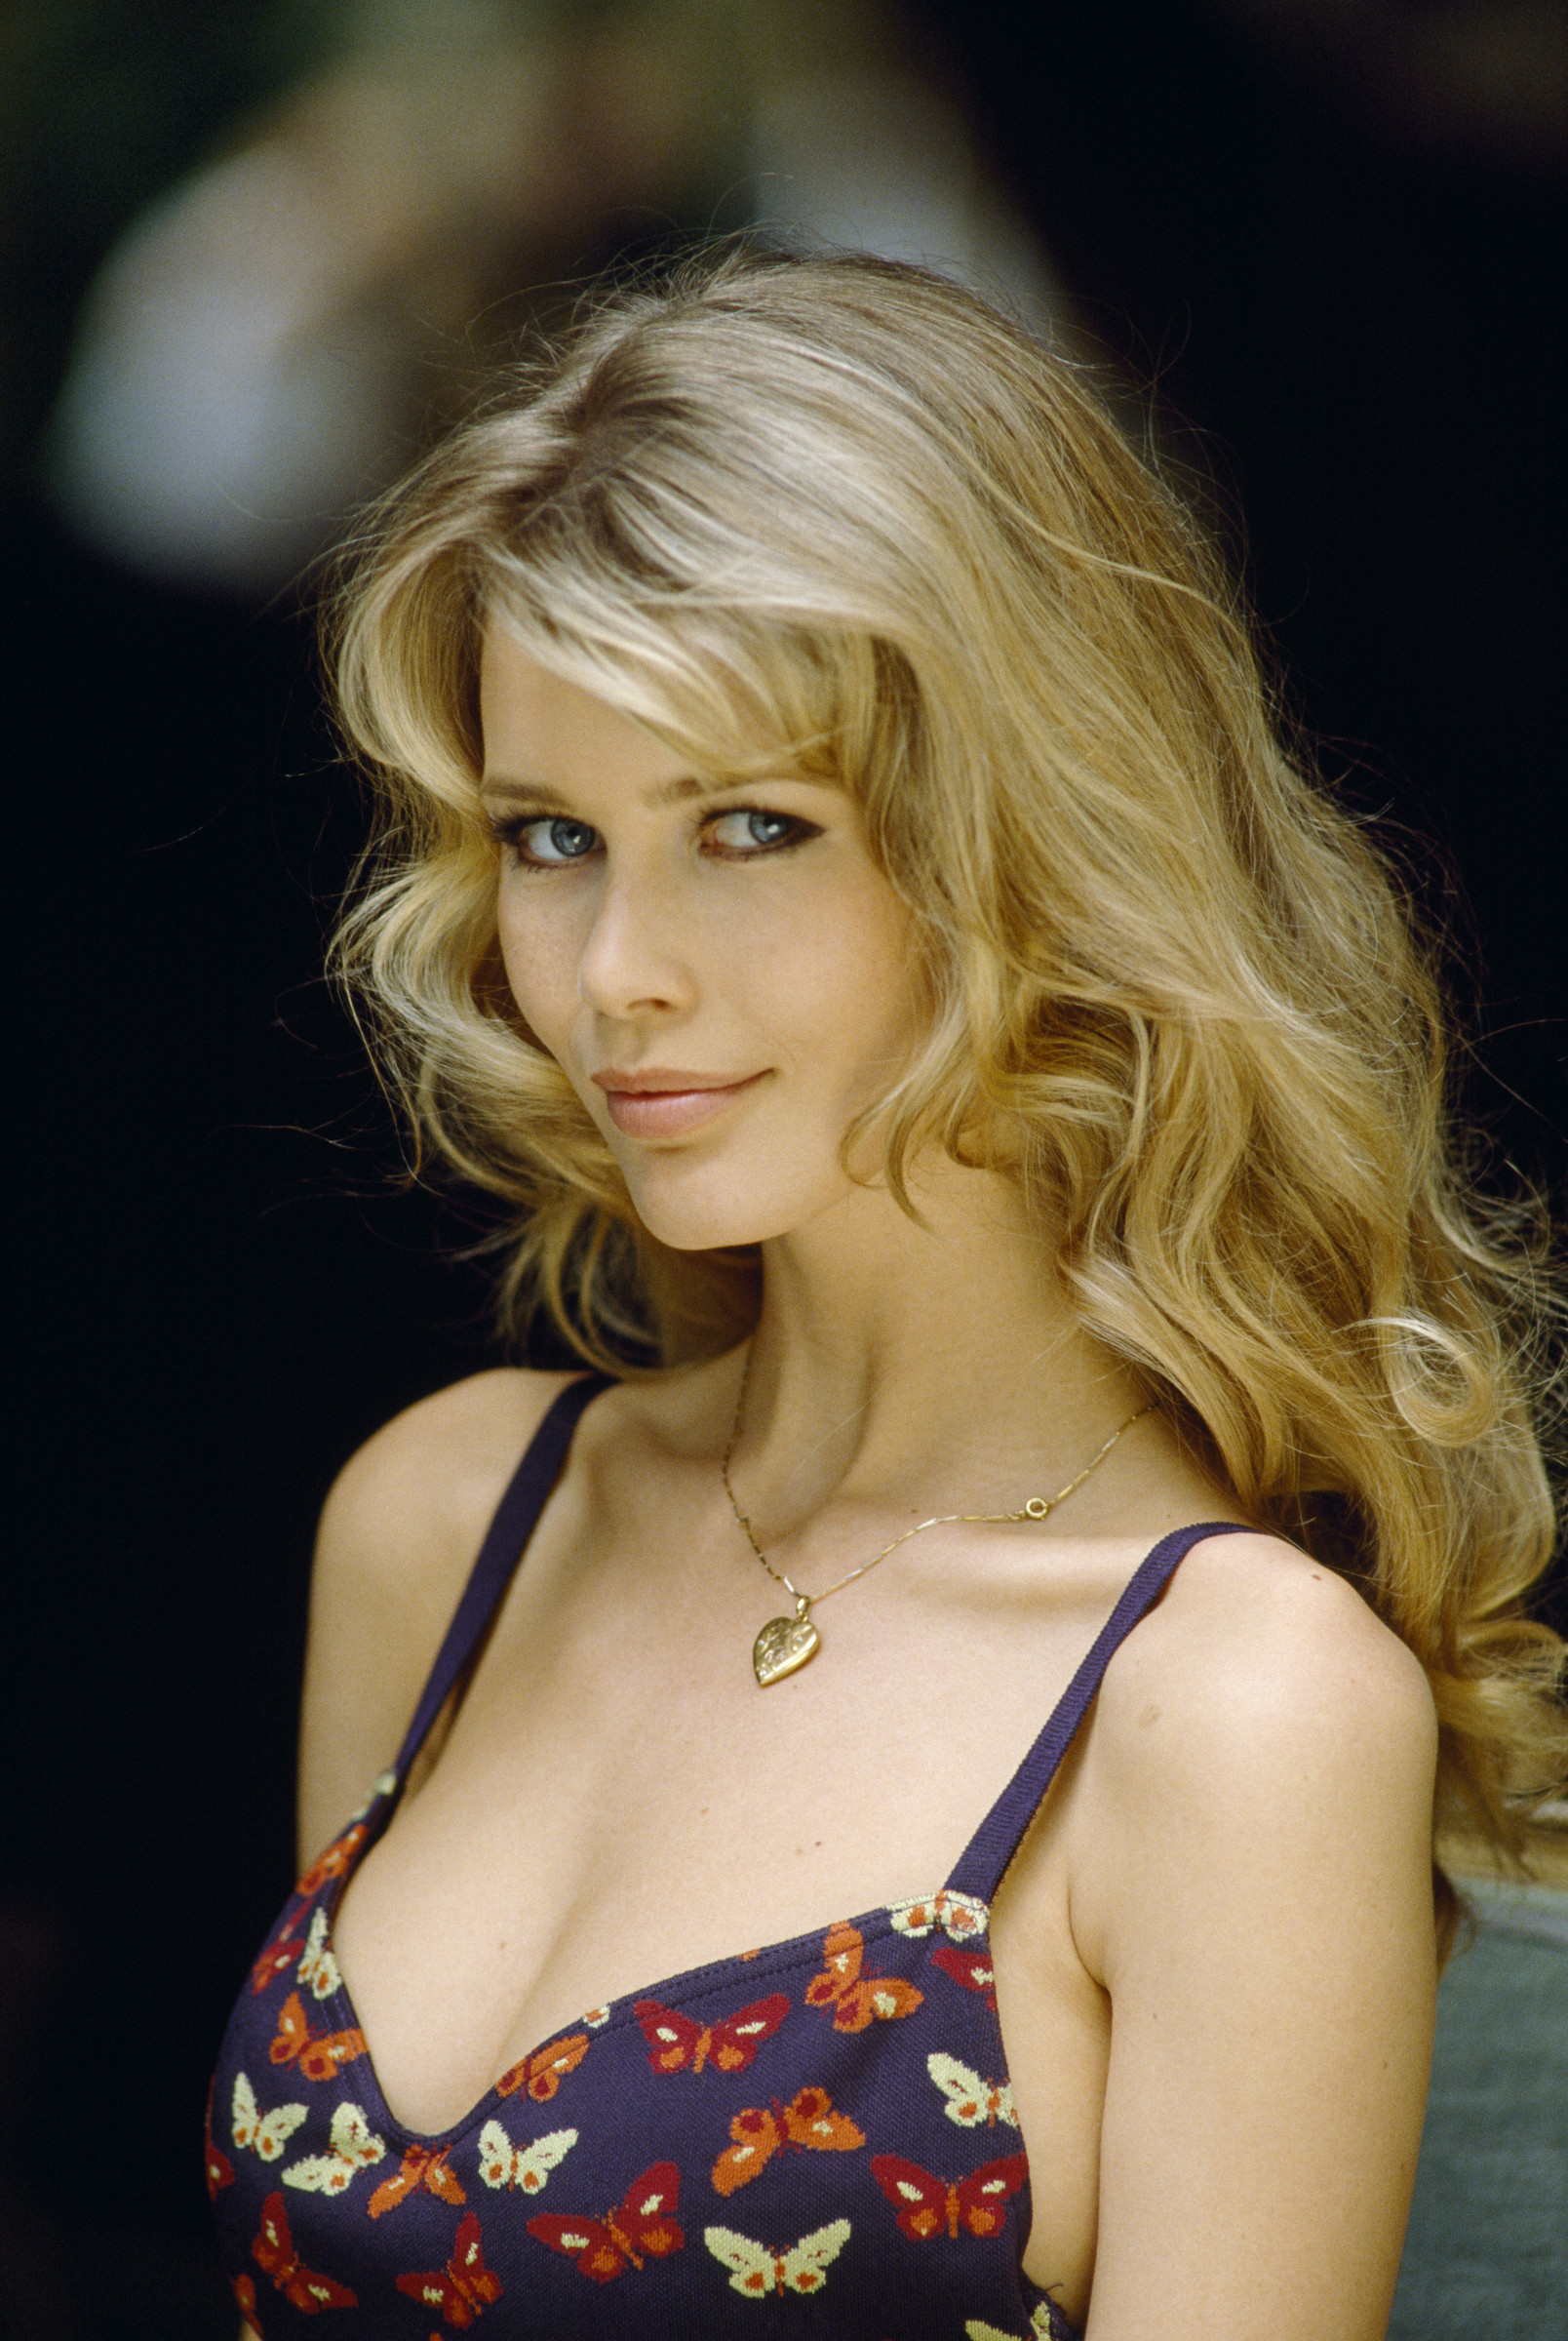 Claudia Schiffer Images Claudia Schiffer Hd Wallpaper And